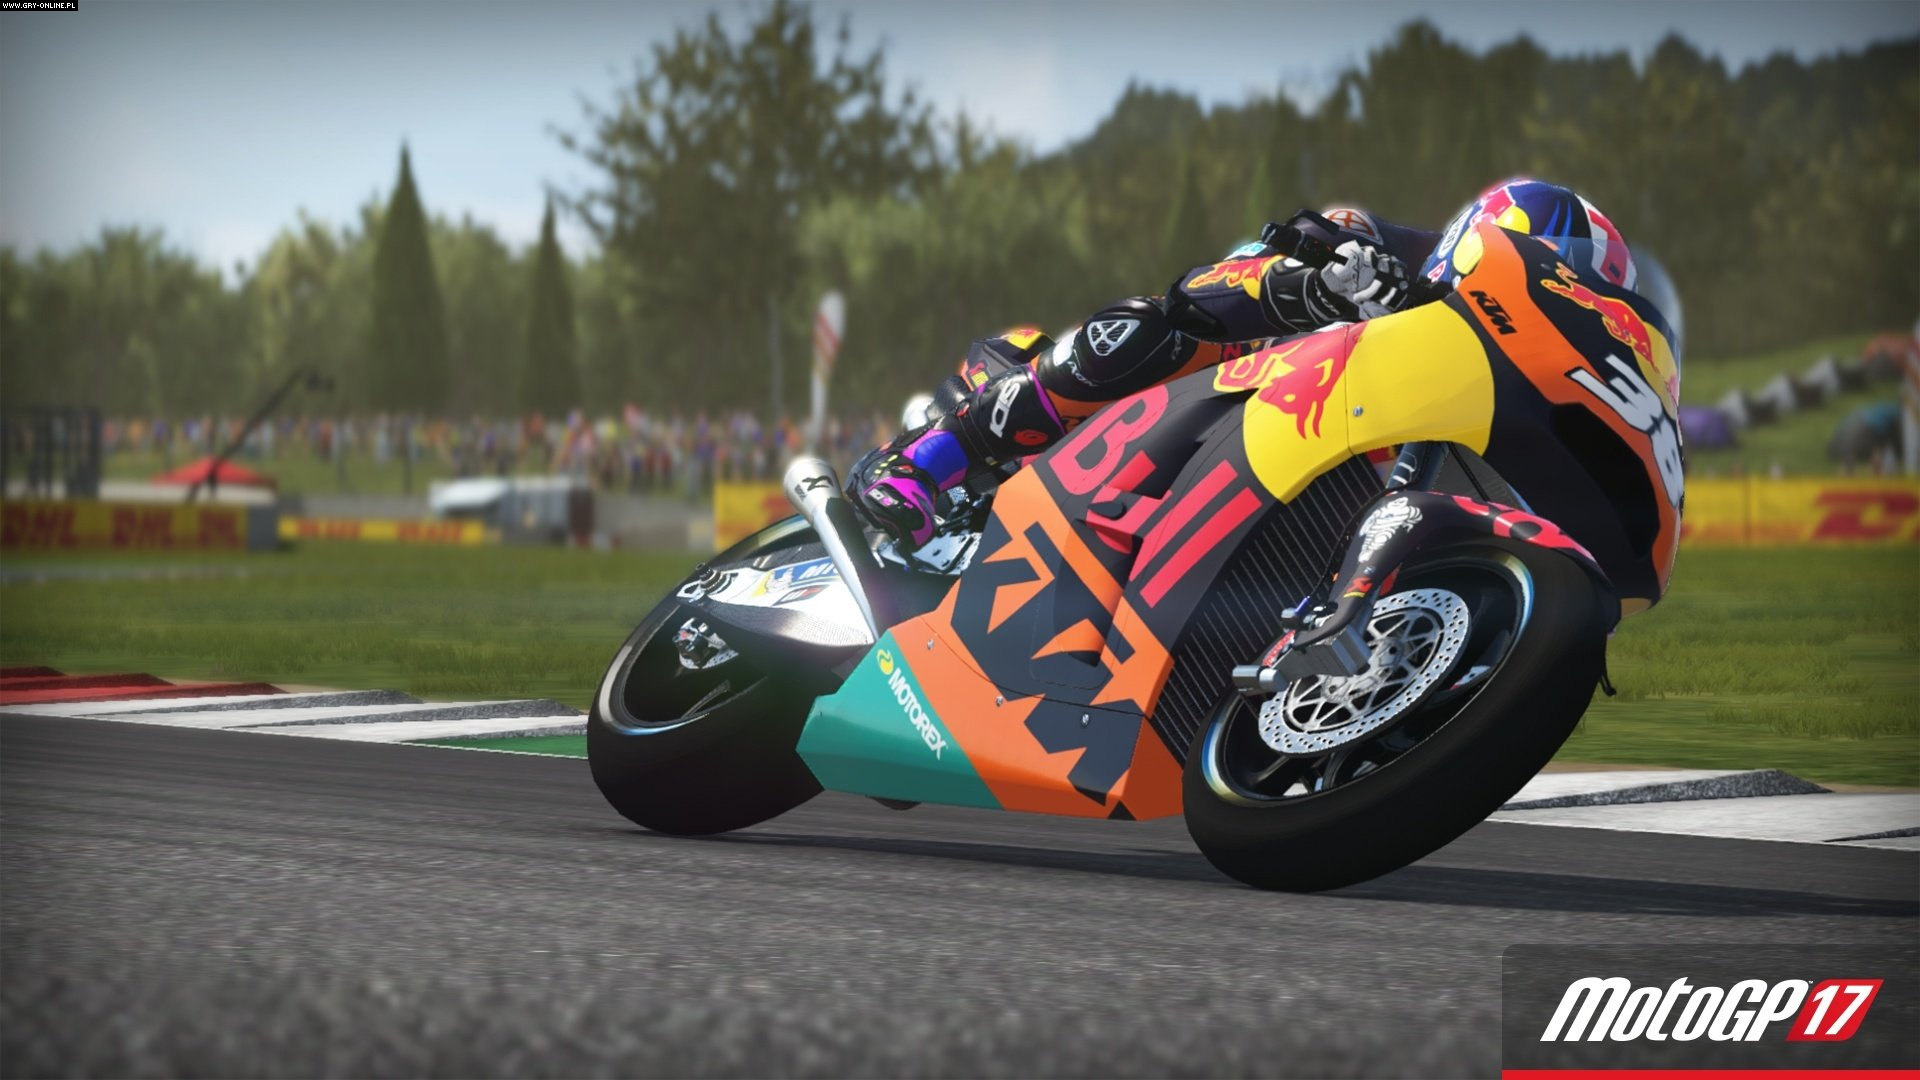 MotoGP 17 PC, PS4, XONE Gry Screen 11/71, Milestone